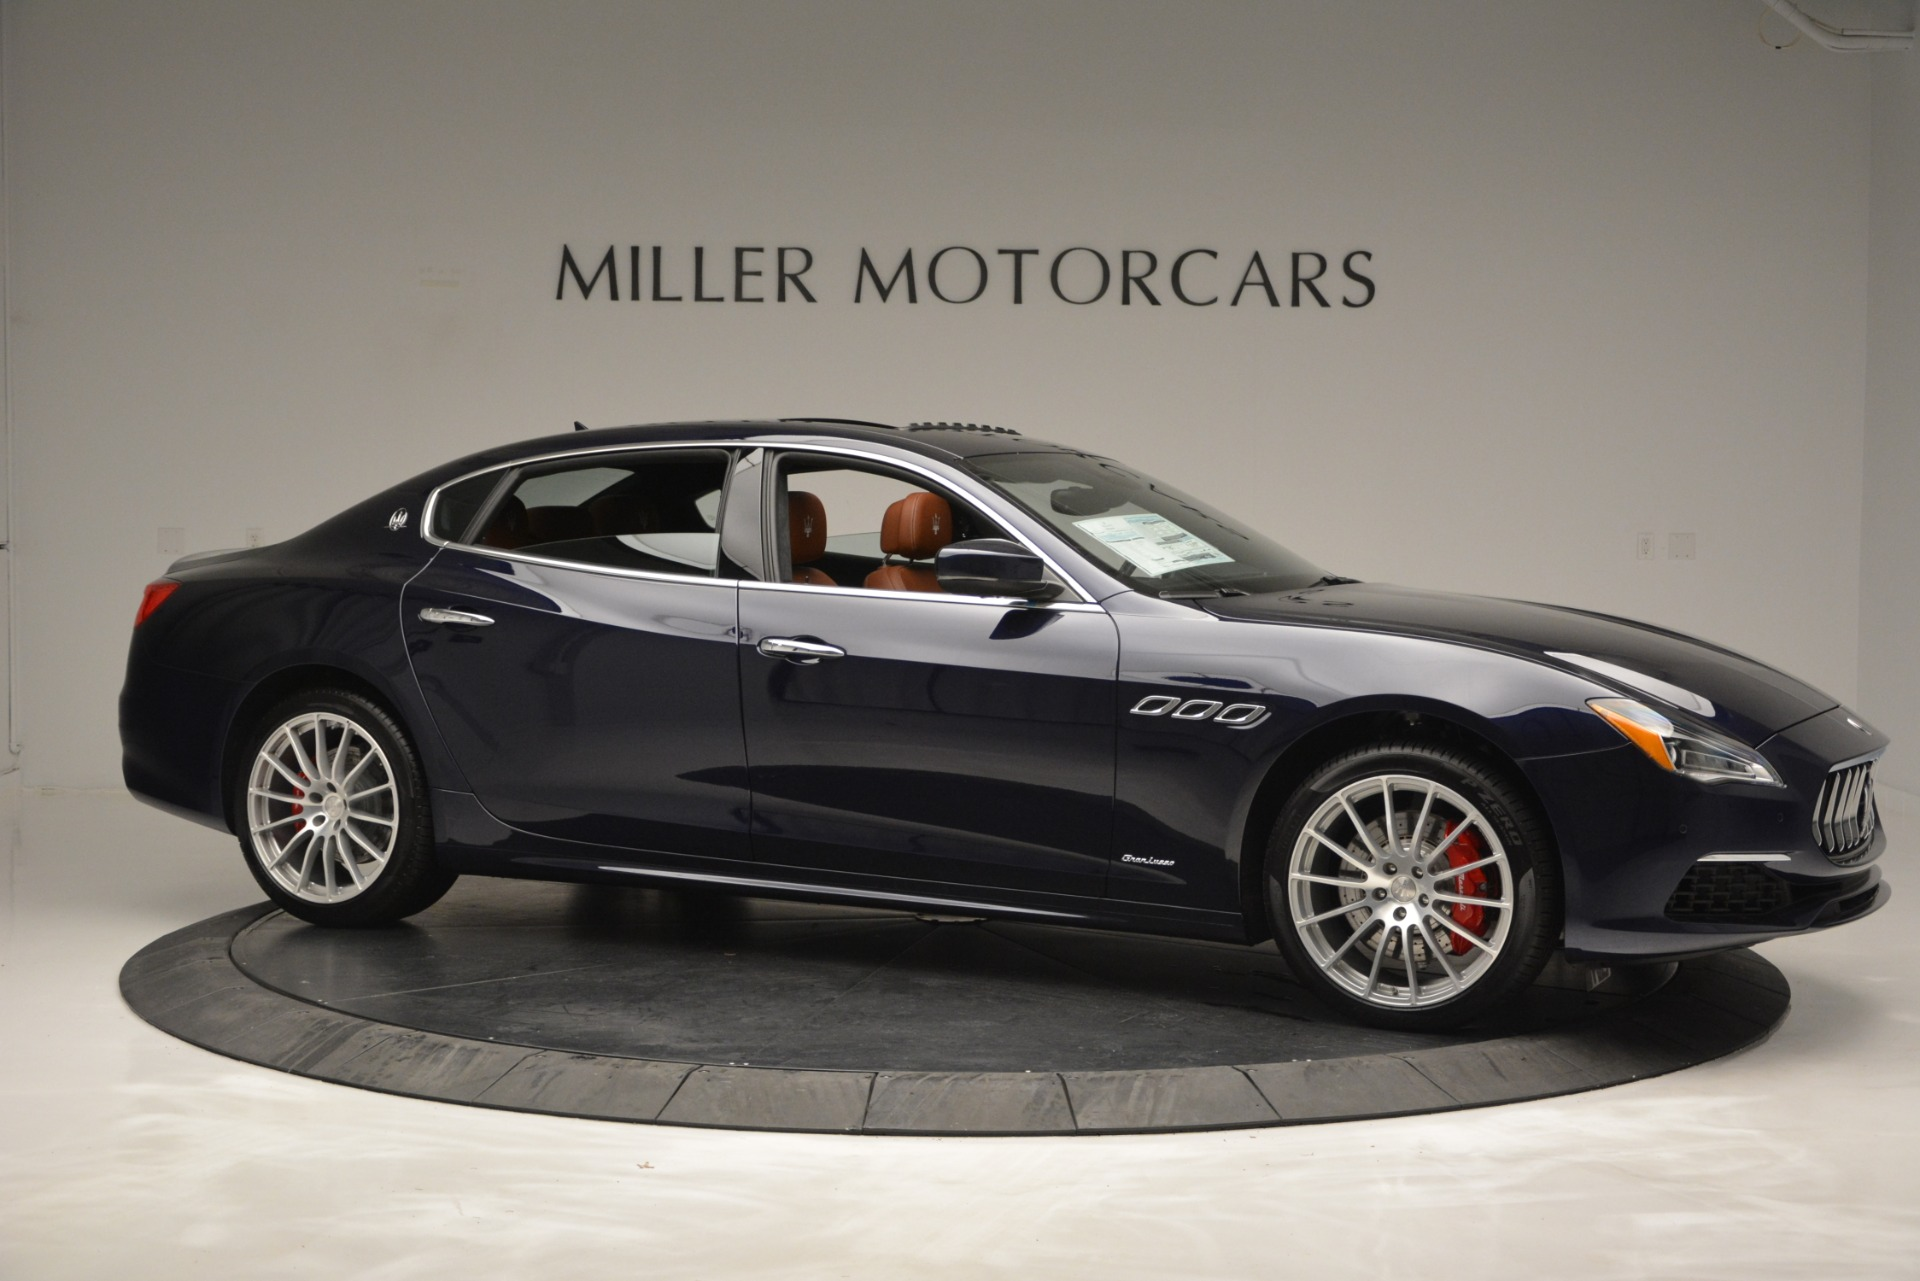 New 2019 Maserati Quattroporte S Q4 GranLusso For Sale In Greenwich, CT 2620_p10